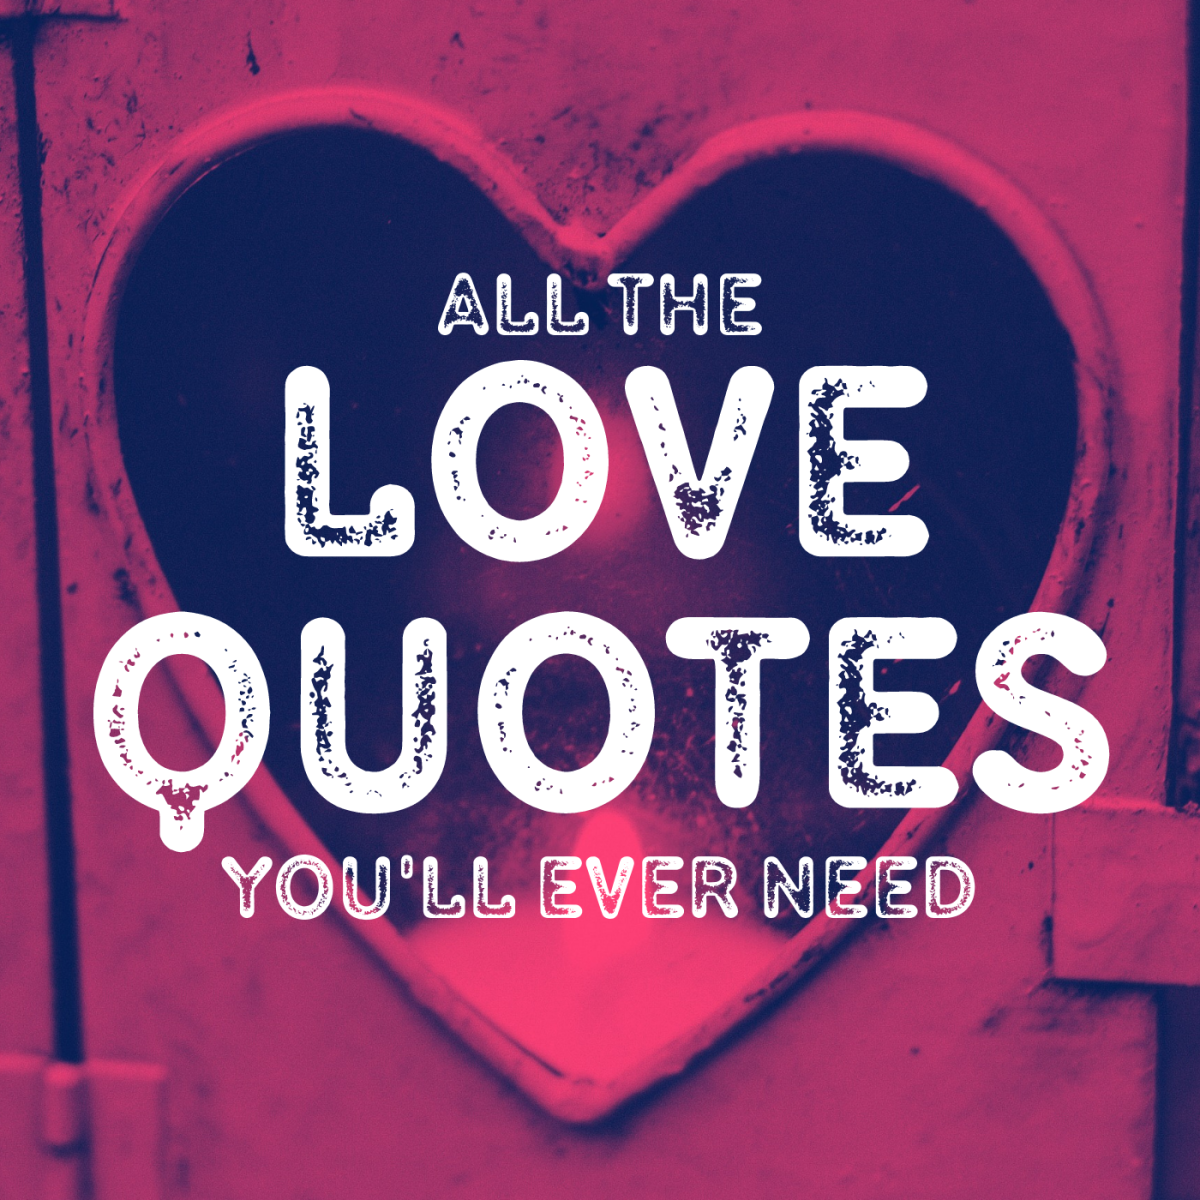 Read hundreds of quotes about love, from the romantic to the cynical.